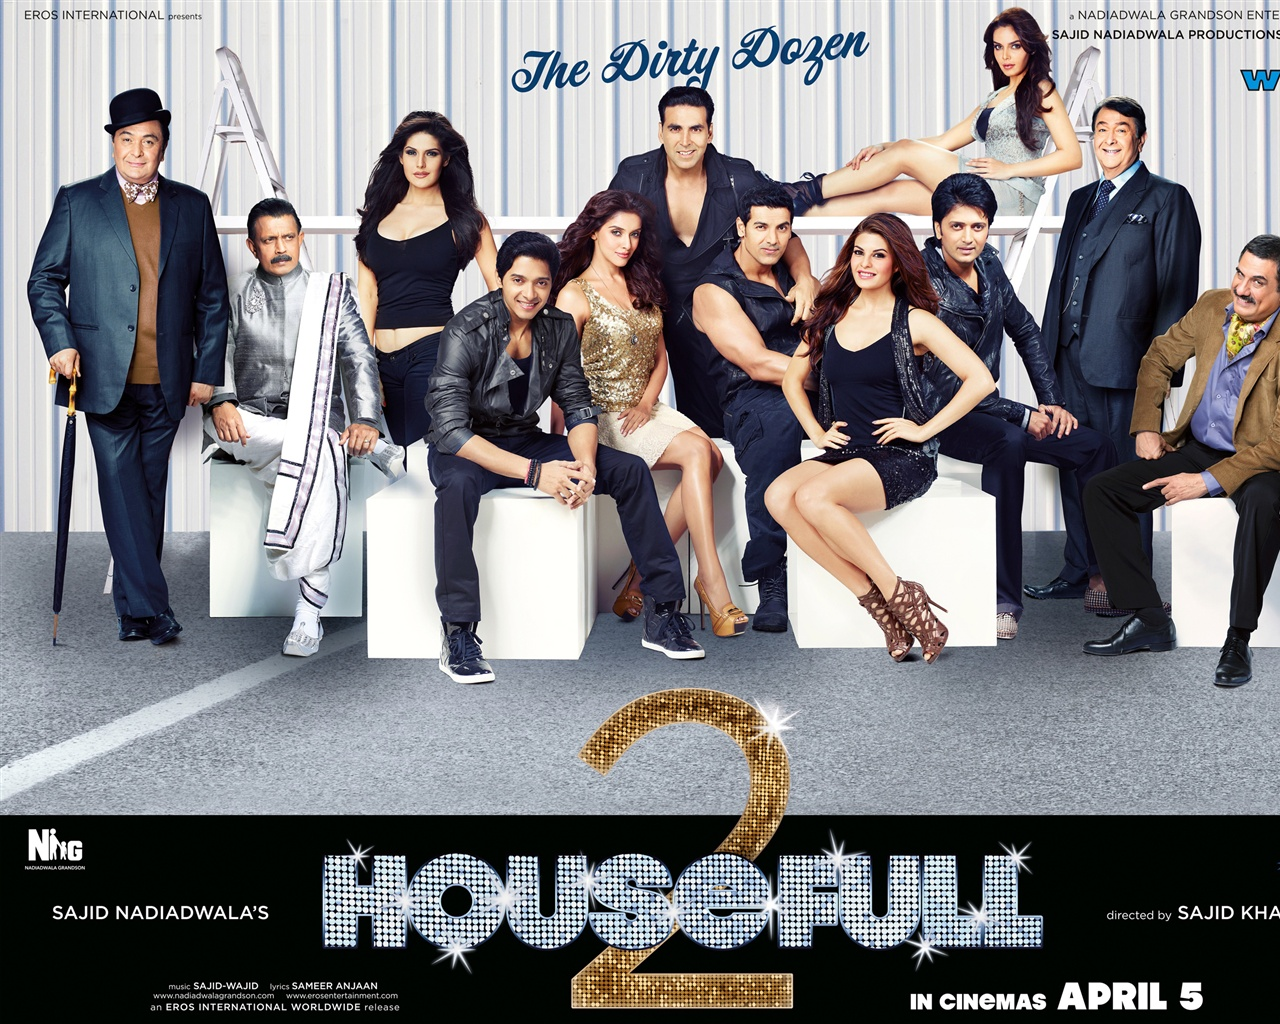 Housefull 2 HD wallpaper - 1280x1024